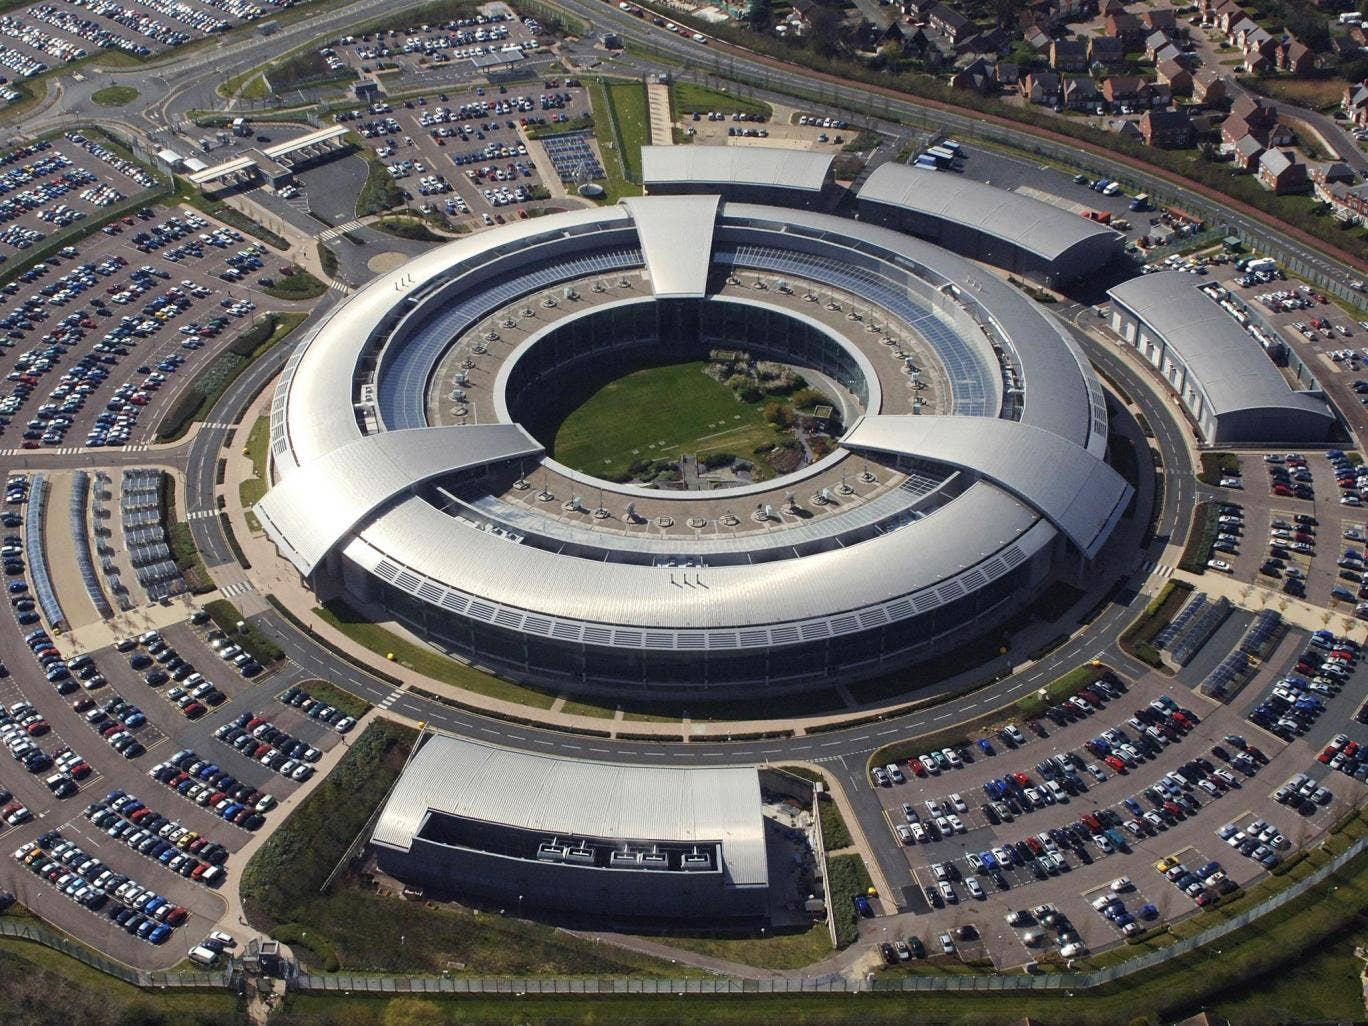 GCHQ in Cheltenham. Master's degree graduates need a detailed knowledge of 'malicious code' and 'adversarial thinking'